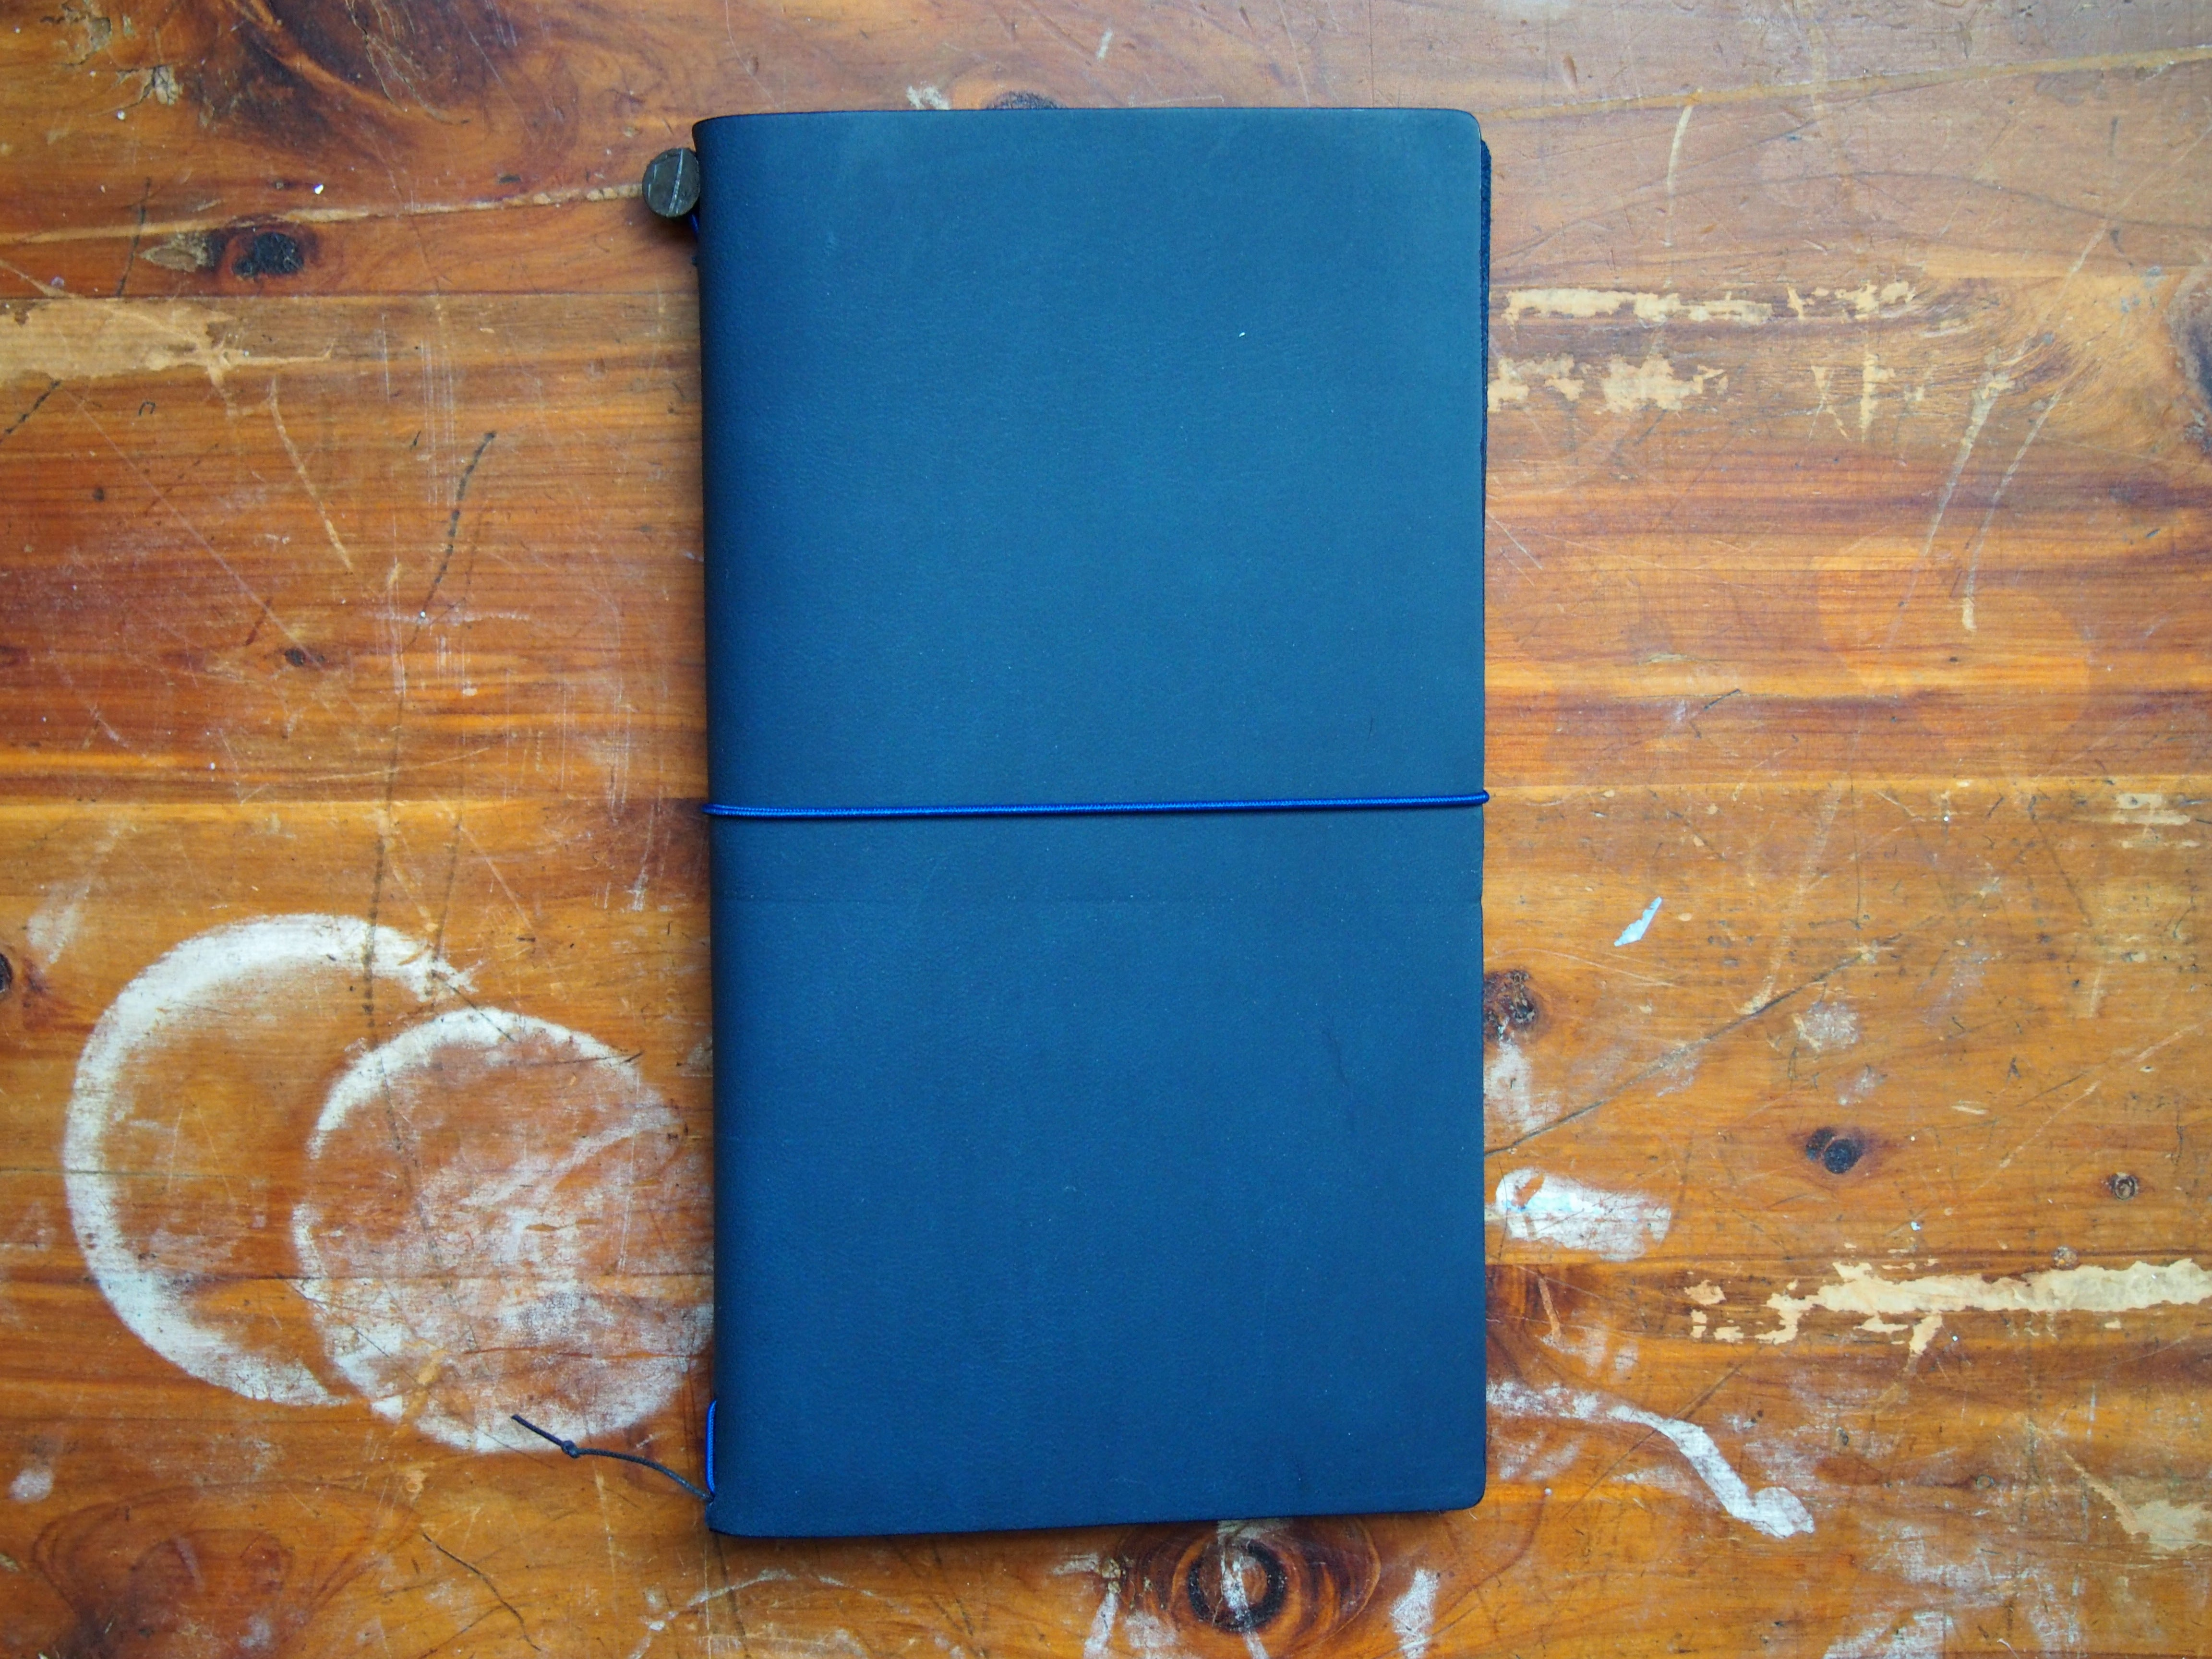 Midori Traveler's Notebook Blue Edition Leather Cover and PanAm Accessories in Toronto, Canada at Wonder Pens wonderpens.ca